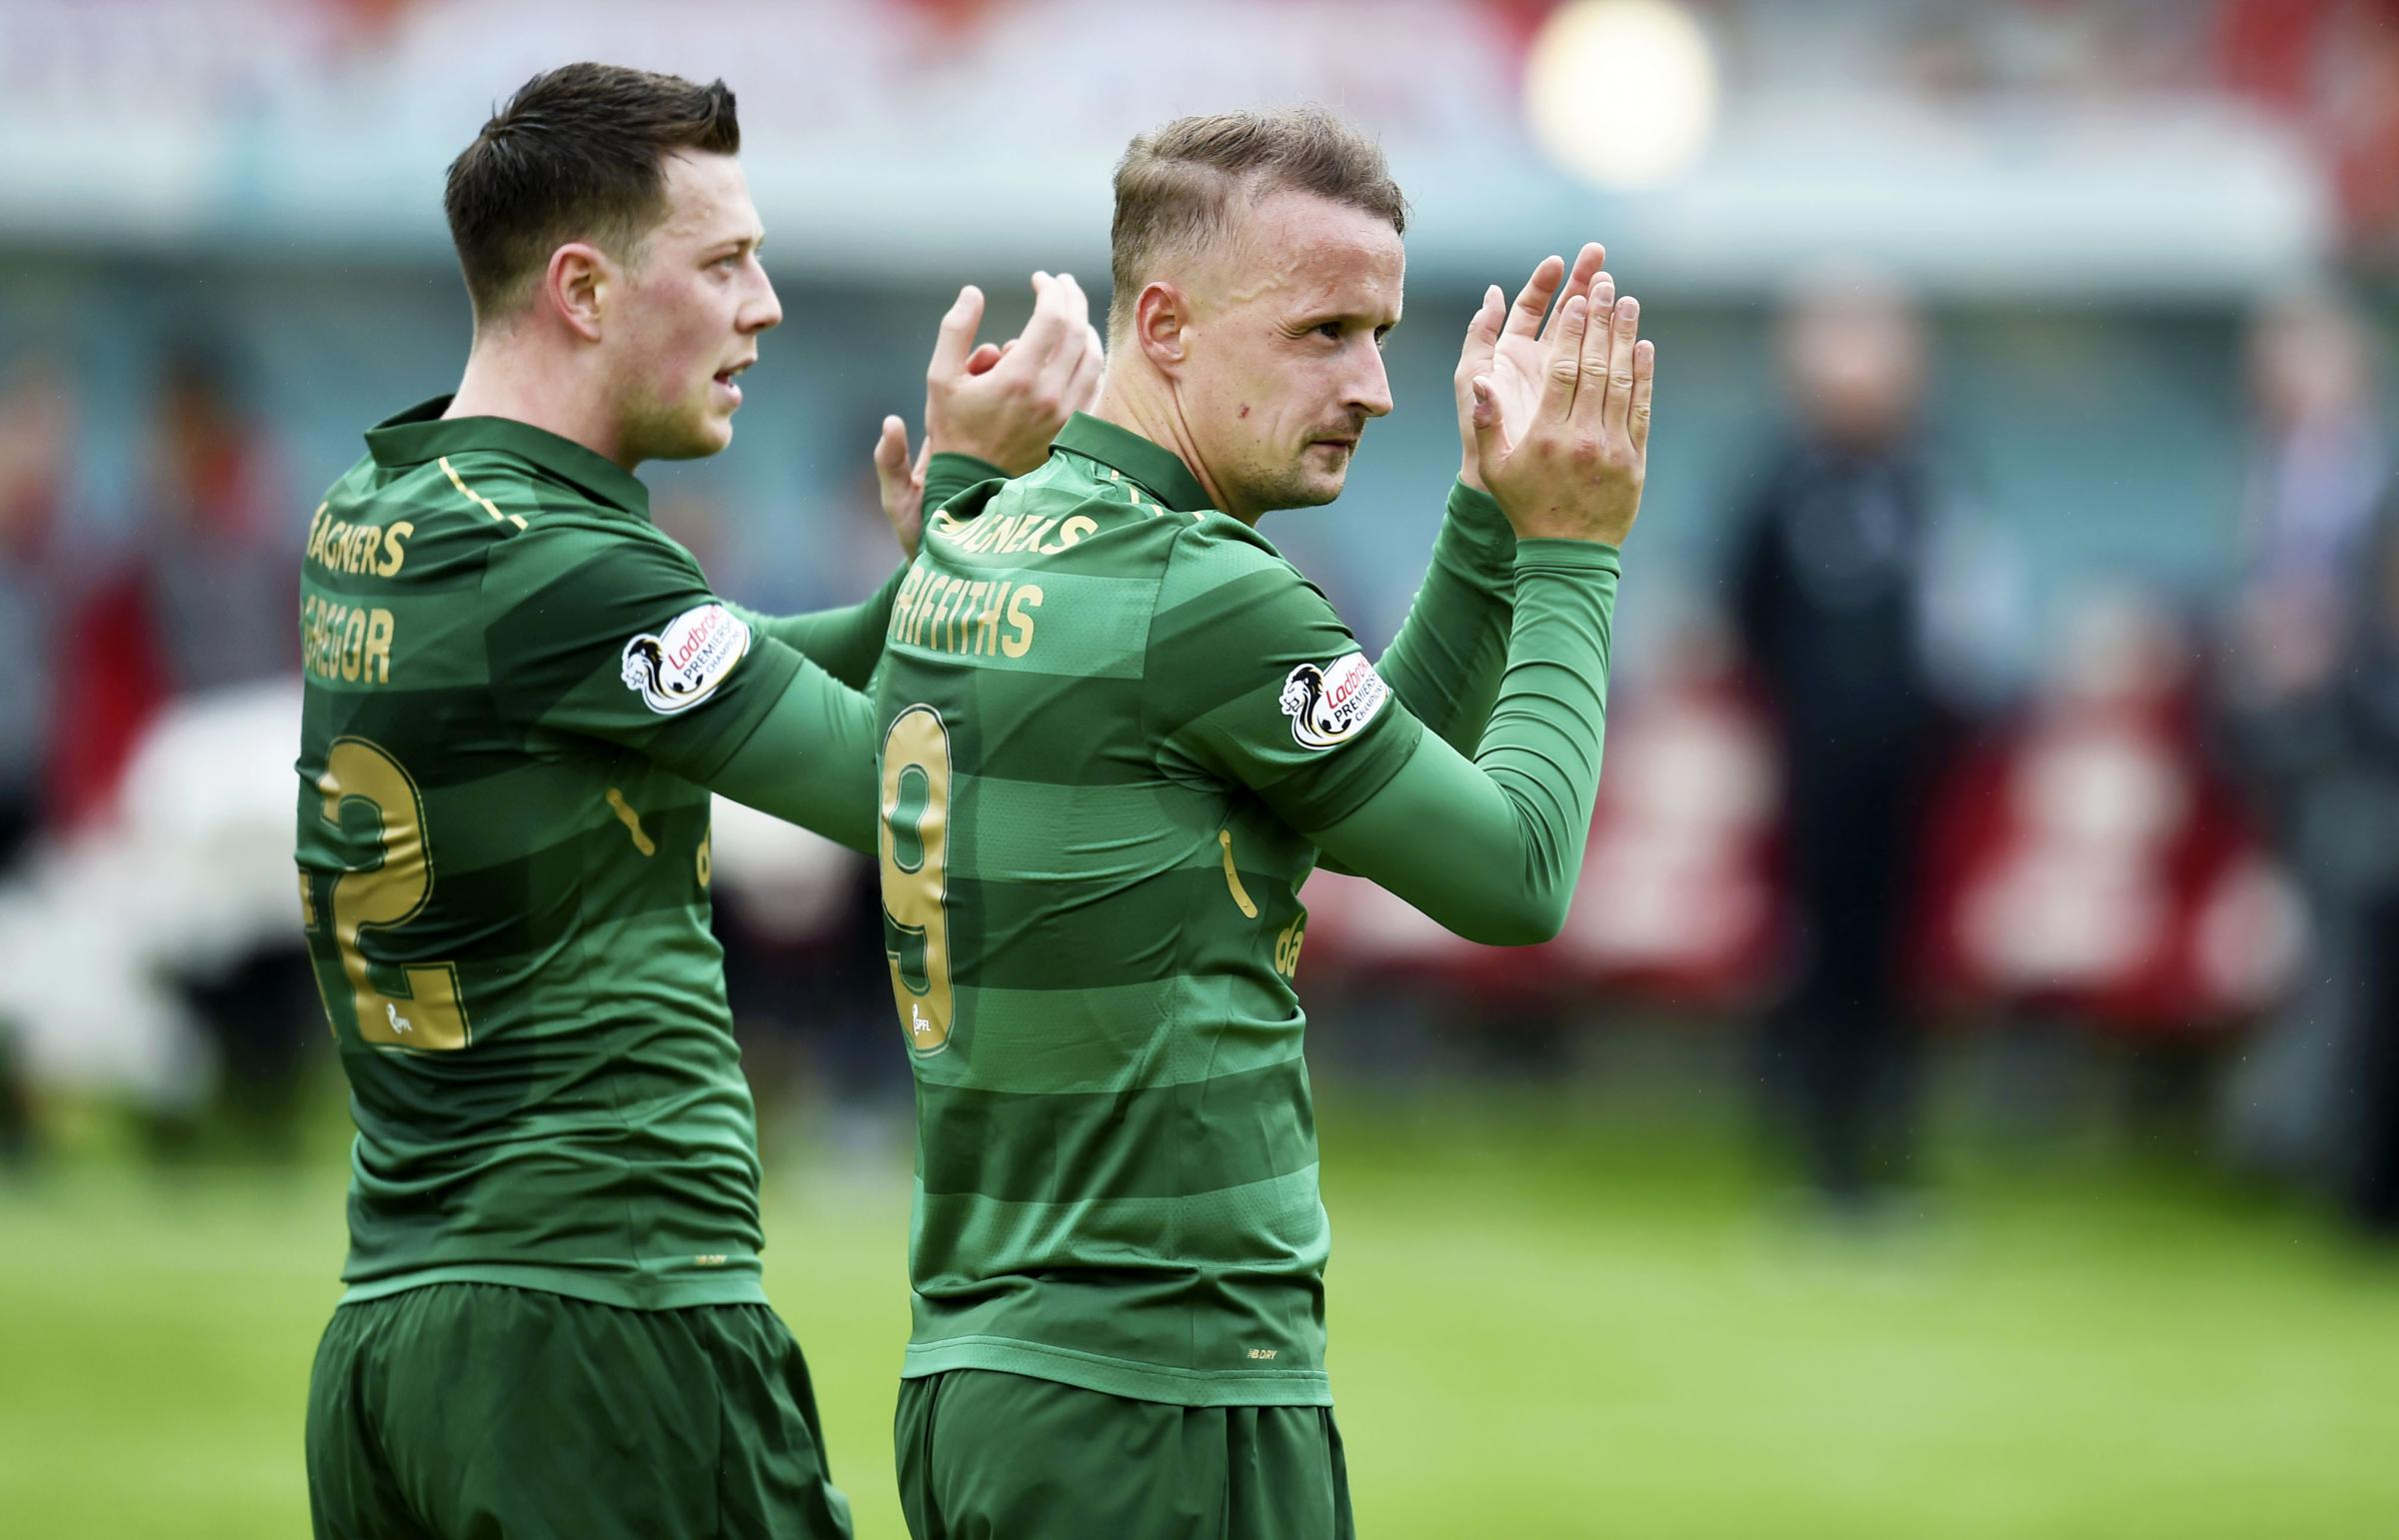 Celtic goalscorers Leigh Griffiths, right, and Callum McGregor, left, celebrate at the end of the 2-1 win over Hamilton yesterday.